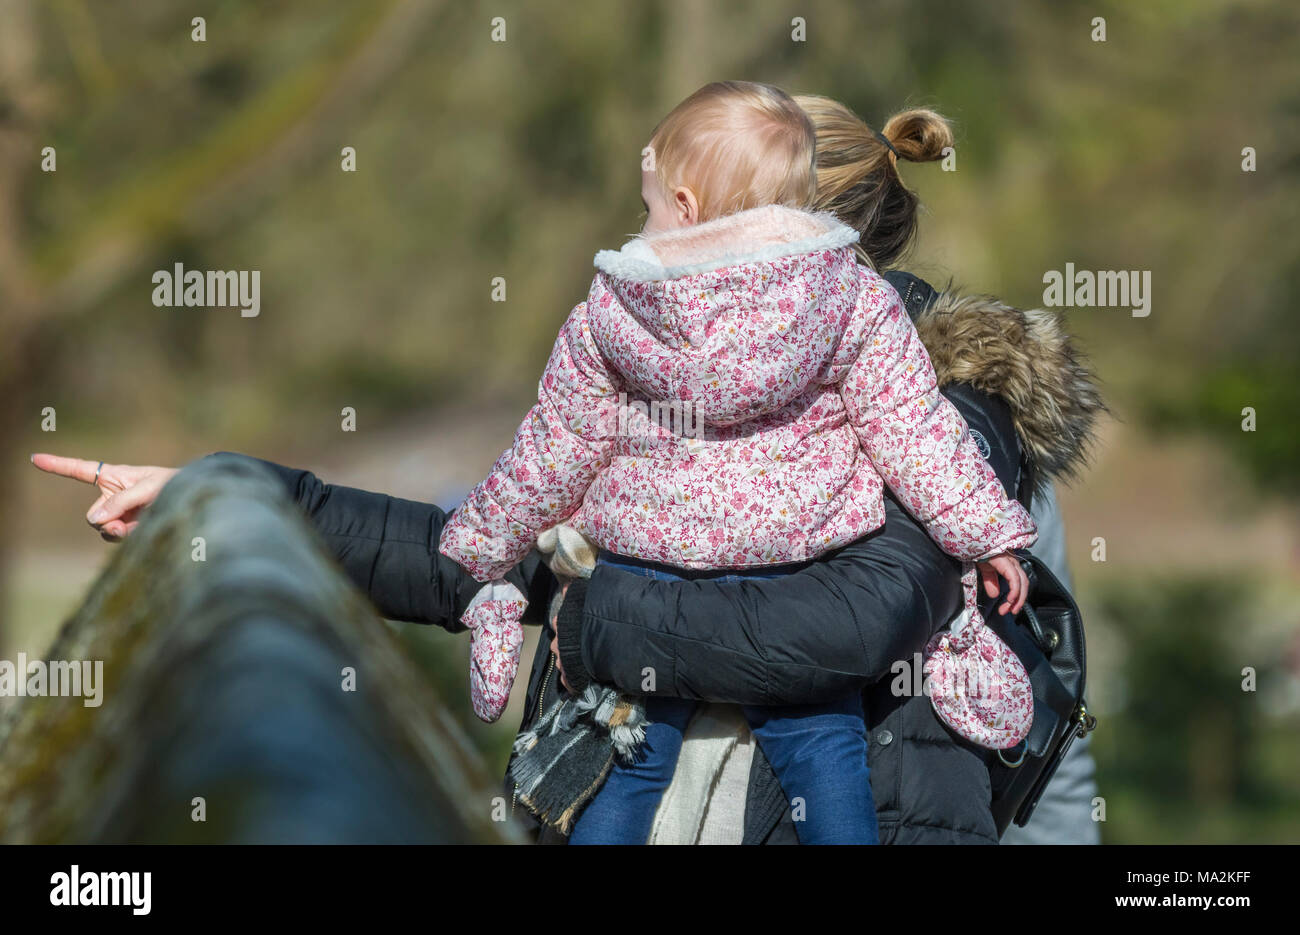 Woman carrying young baby pointing something out on a day out in the UK. - Stock Image